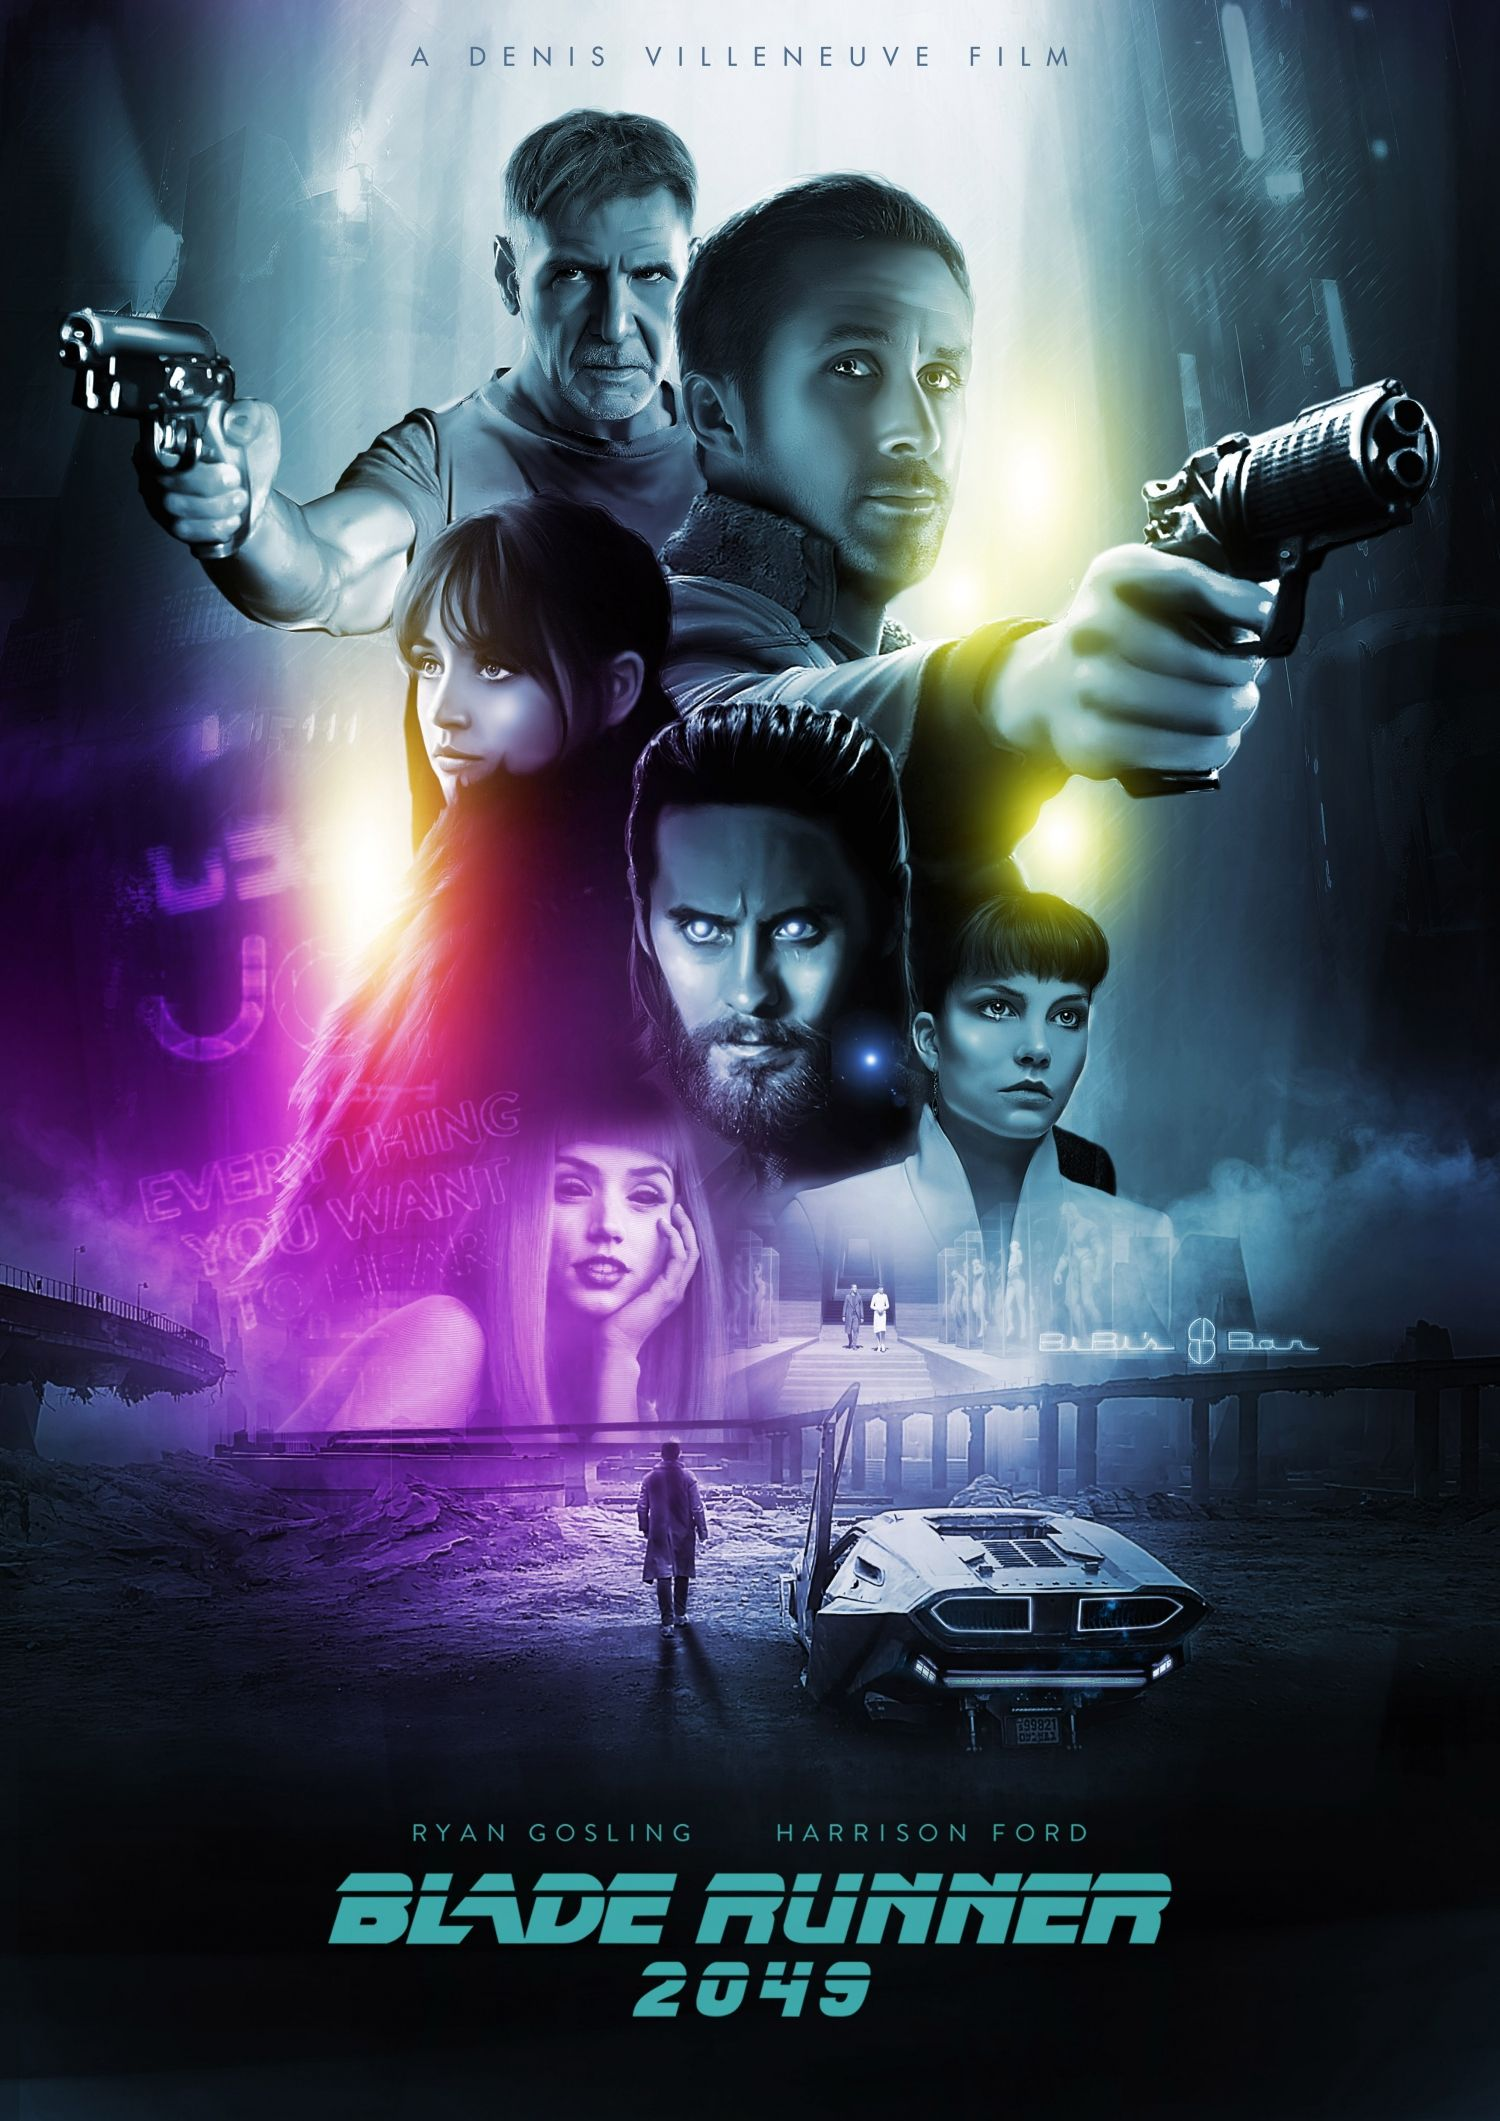 Blade Runner 2049 2017 1500 X 2121 Blade Runner Blade Runner 2049 Alternative Movie Posters